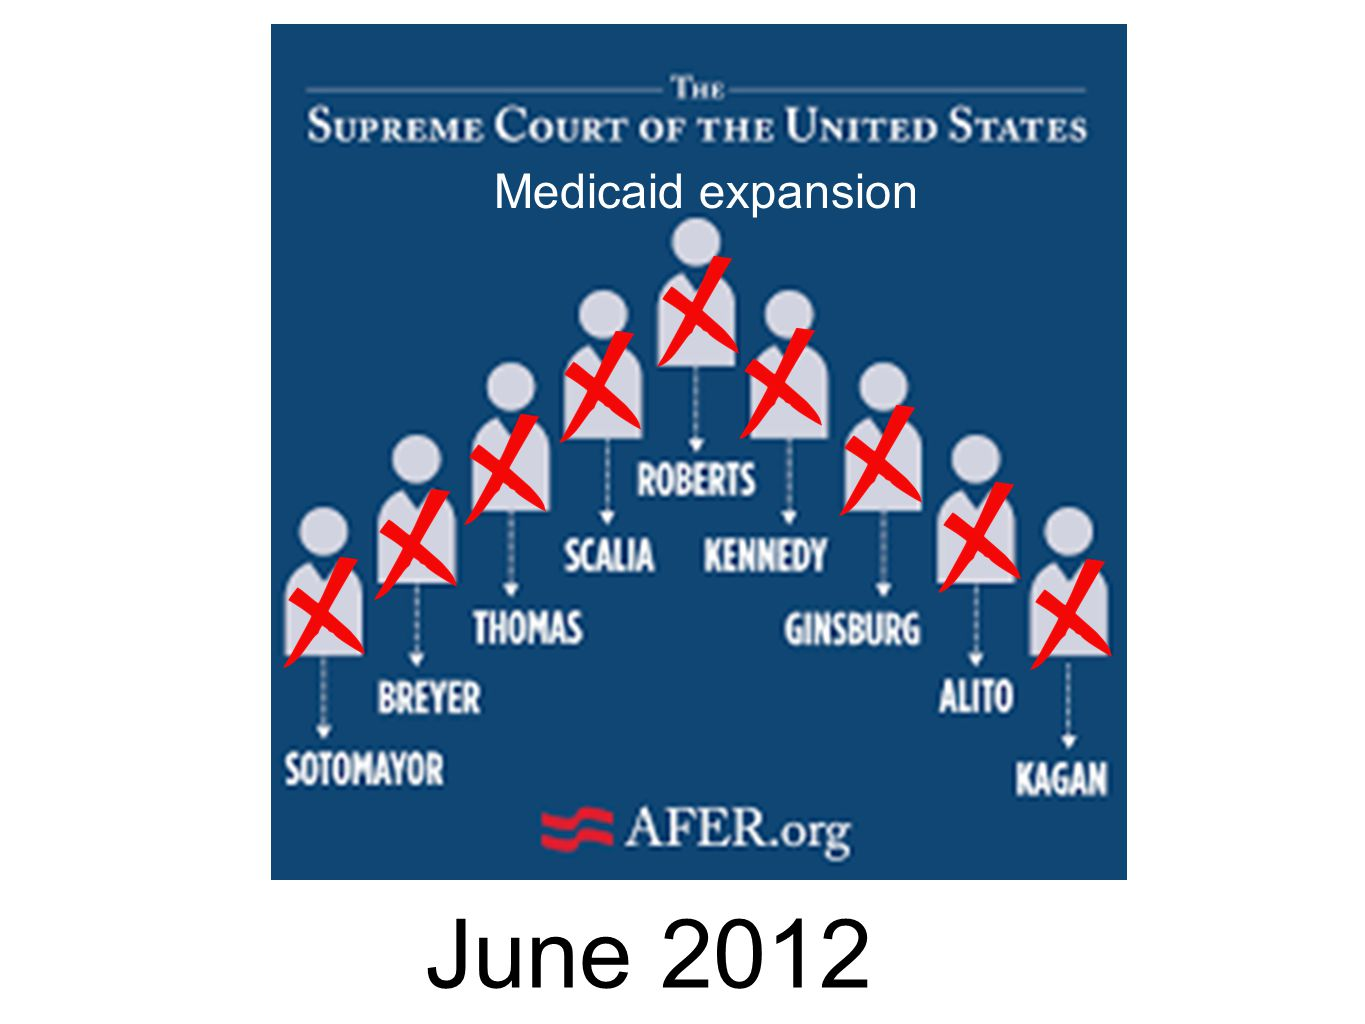 June 2012 Medicaid expansion